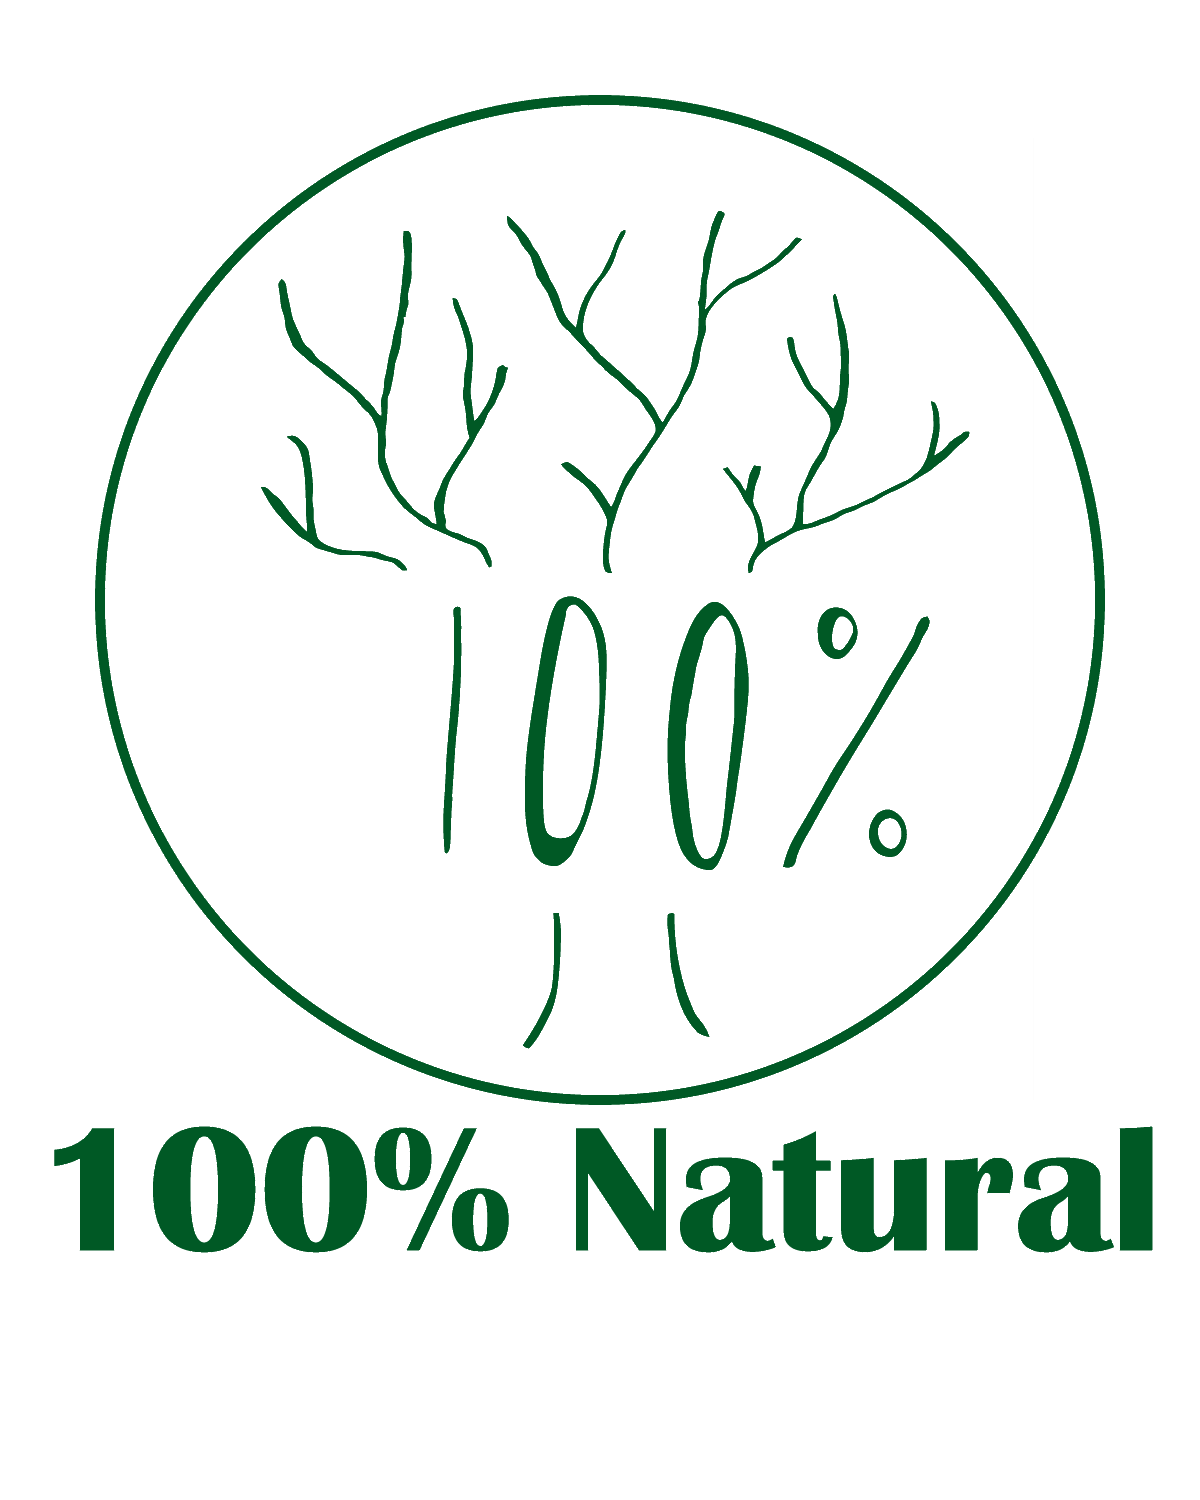 The Green Bundle 100% Natural Logo